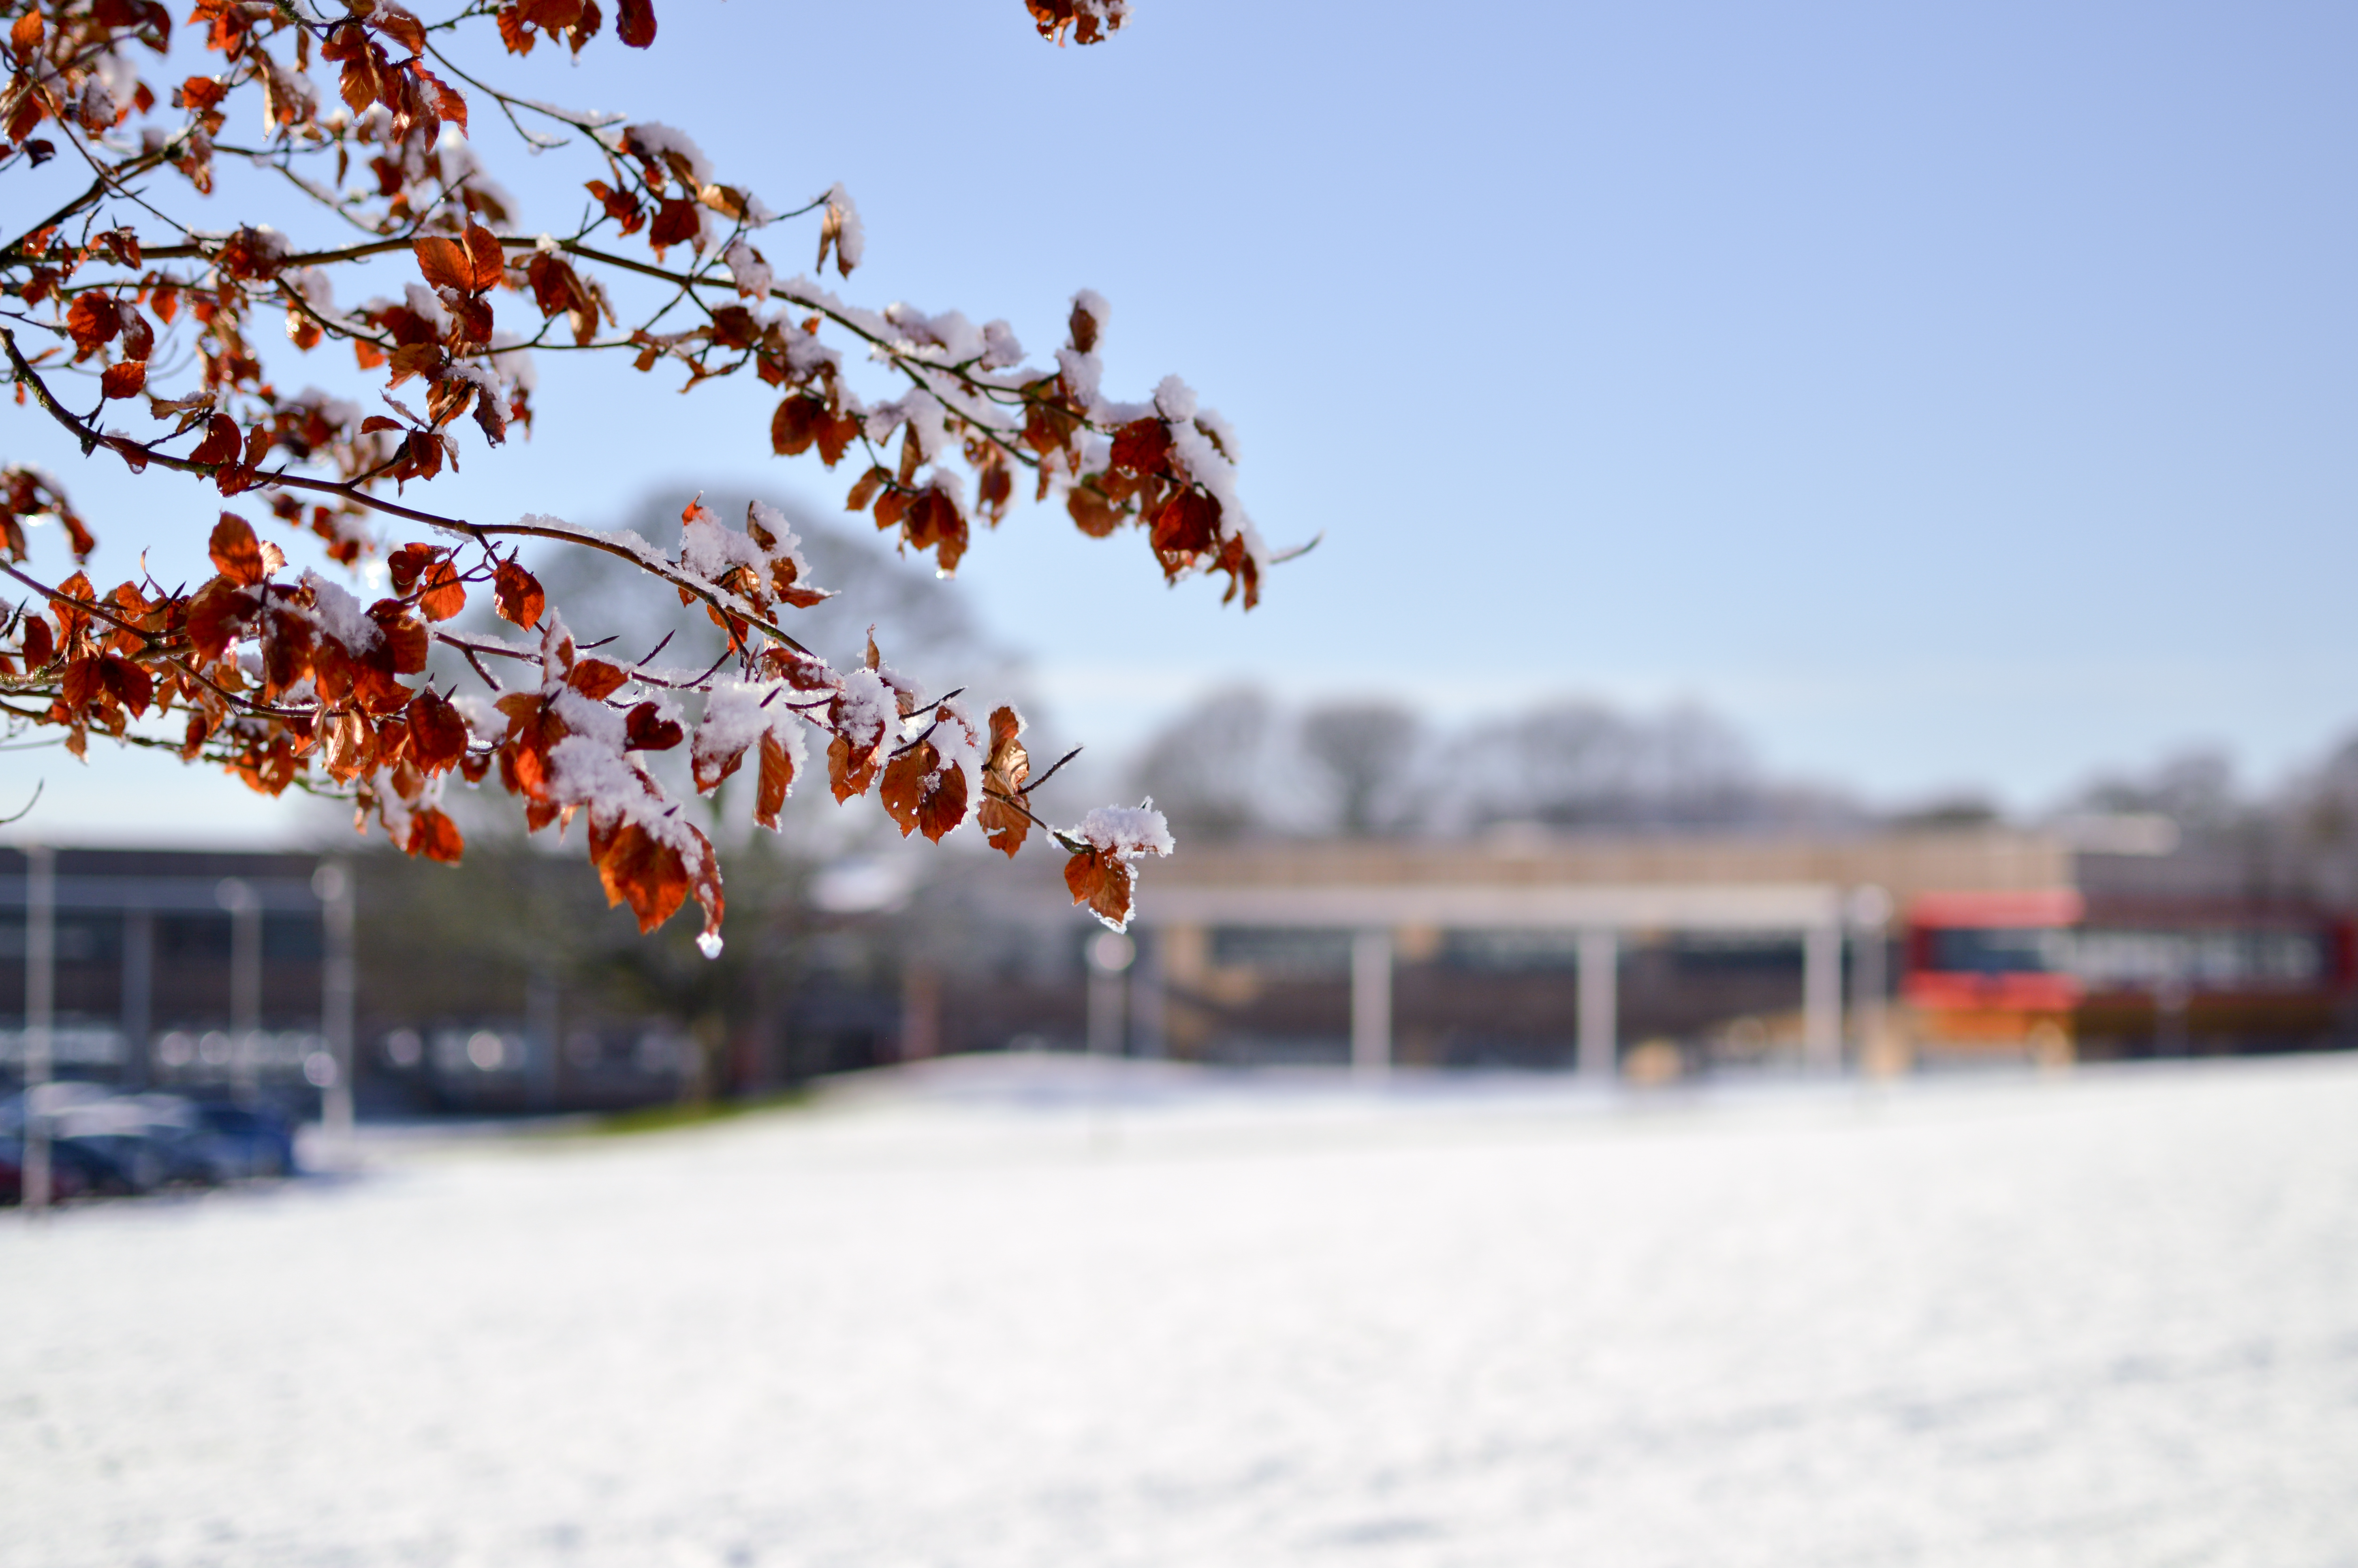 Winter at Witton Park Academy